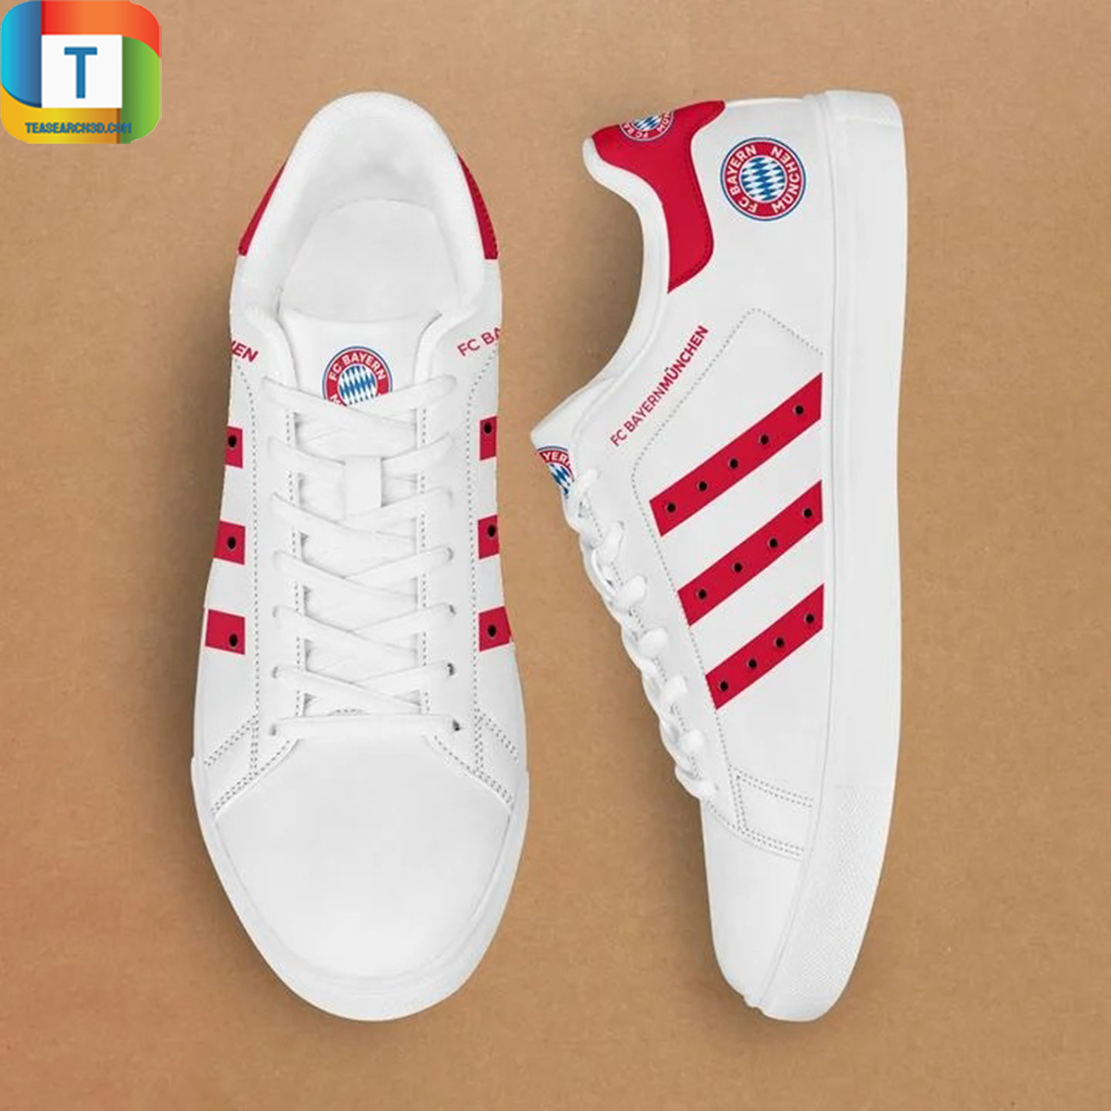 Bayern munchen stan smith low top shoes 3